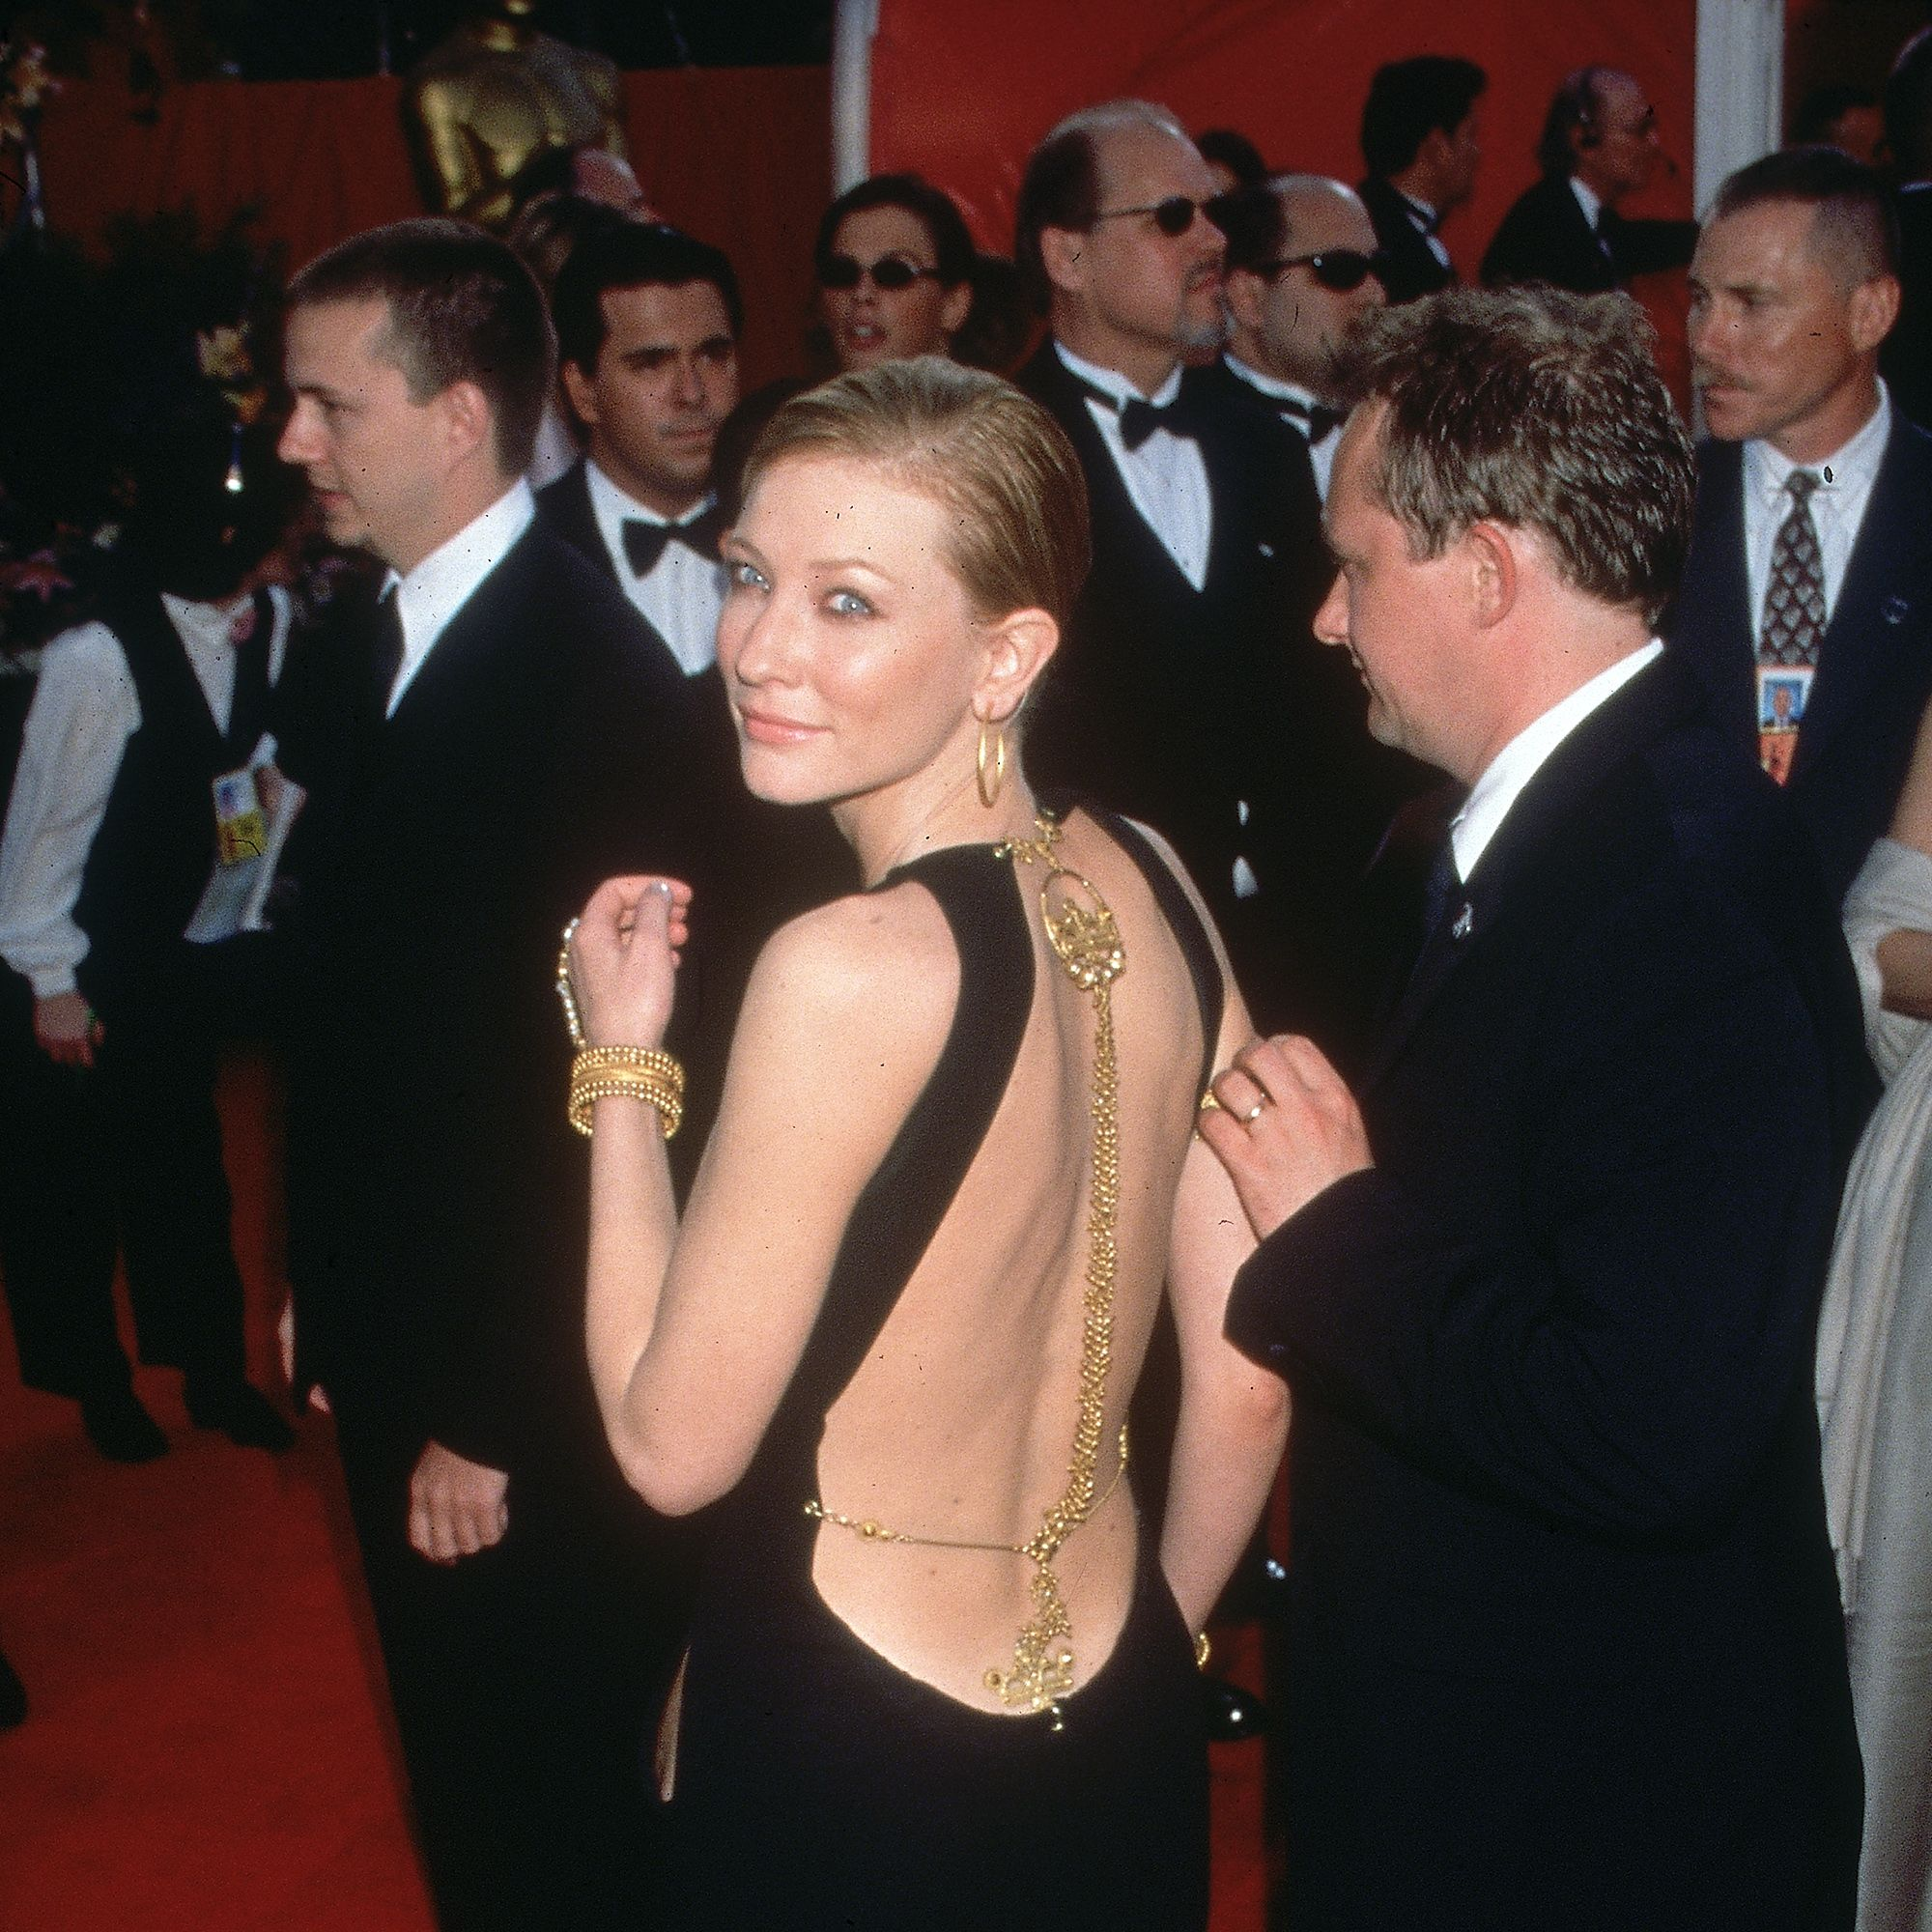 26th March 2000:  Australian actor Cate Blanchett smiles over her shoulder while walking with her husband, Andrew Upton, at the Academy Awards, Shrine Auditorium, Los Angeles, California.  Blanchett is wearing a backless black gown with decorative gold chains.  She starred in director Anthony Minghella's film, 'The Talented Mr. Ripley,' which was nominated Best Picture, and also served as a presenter at the ceremony.  (Photo by Paul Fenton/Fotos International/Getty Images)